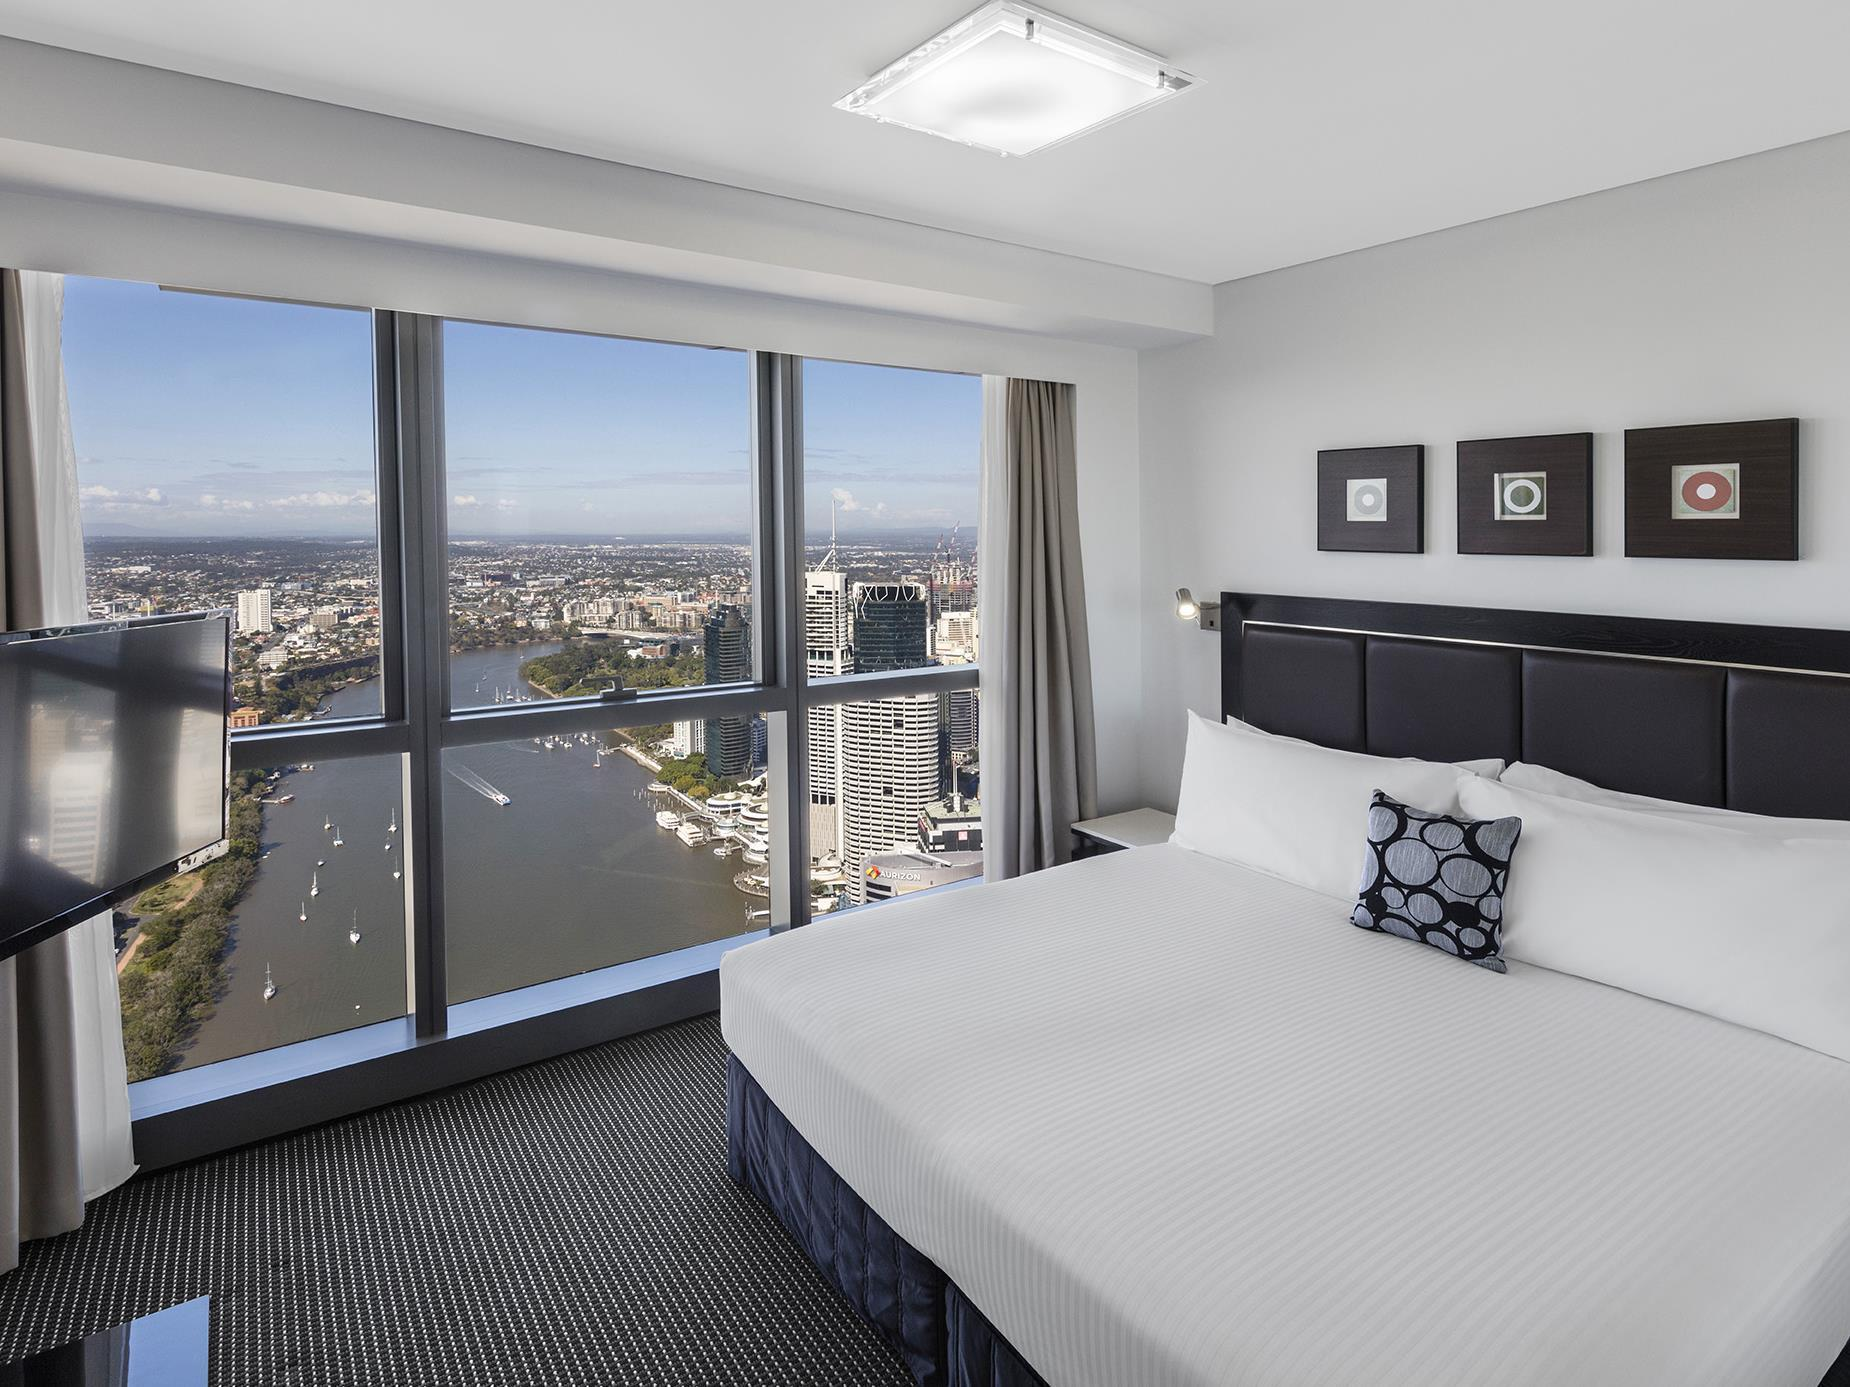 brisbane hotel with a good view british expats. Black Bedroom Furniture Sets. Home Design Ideas